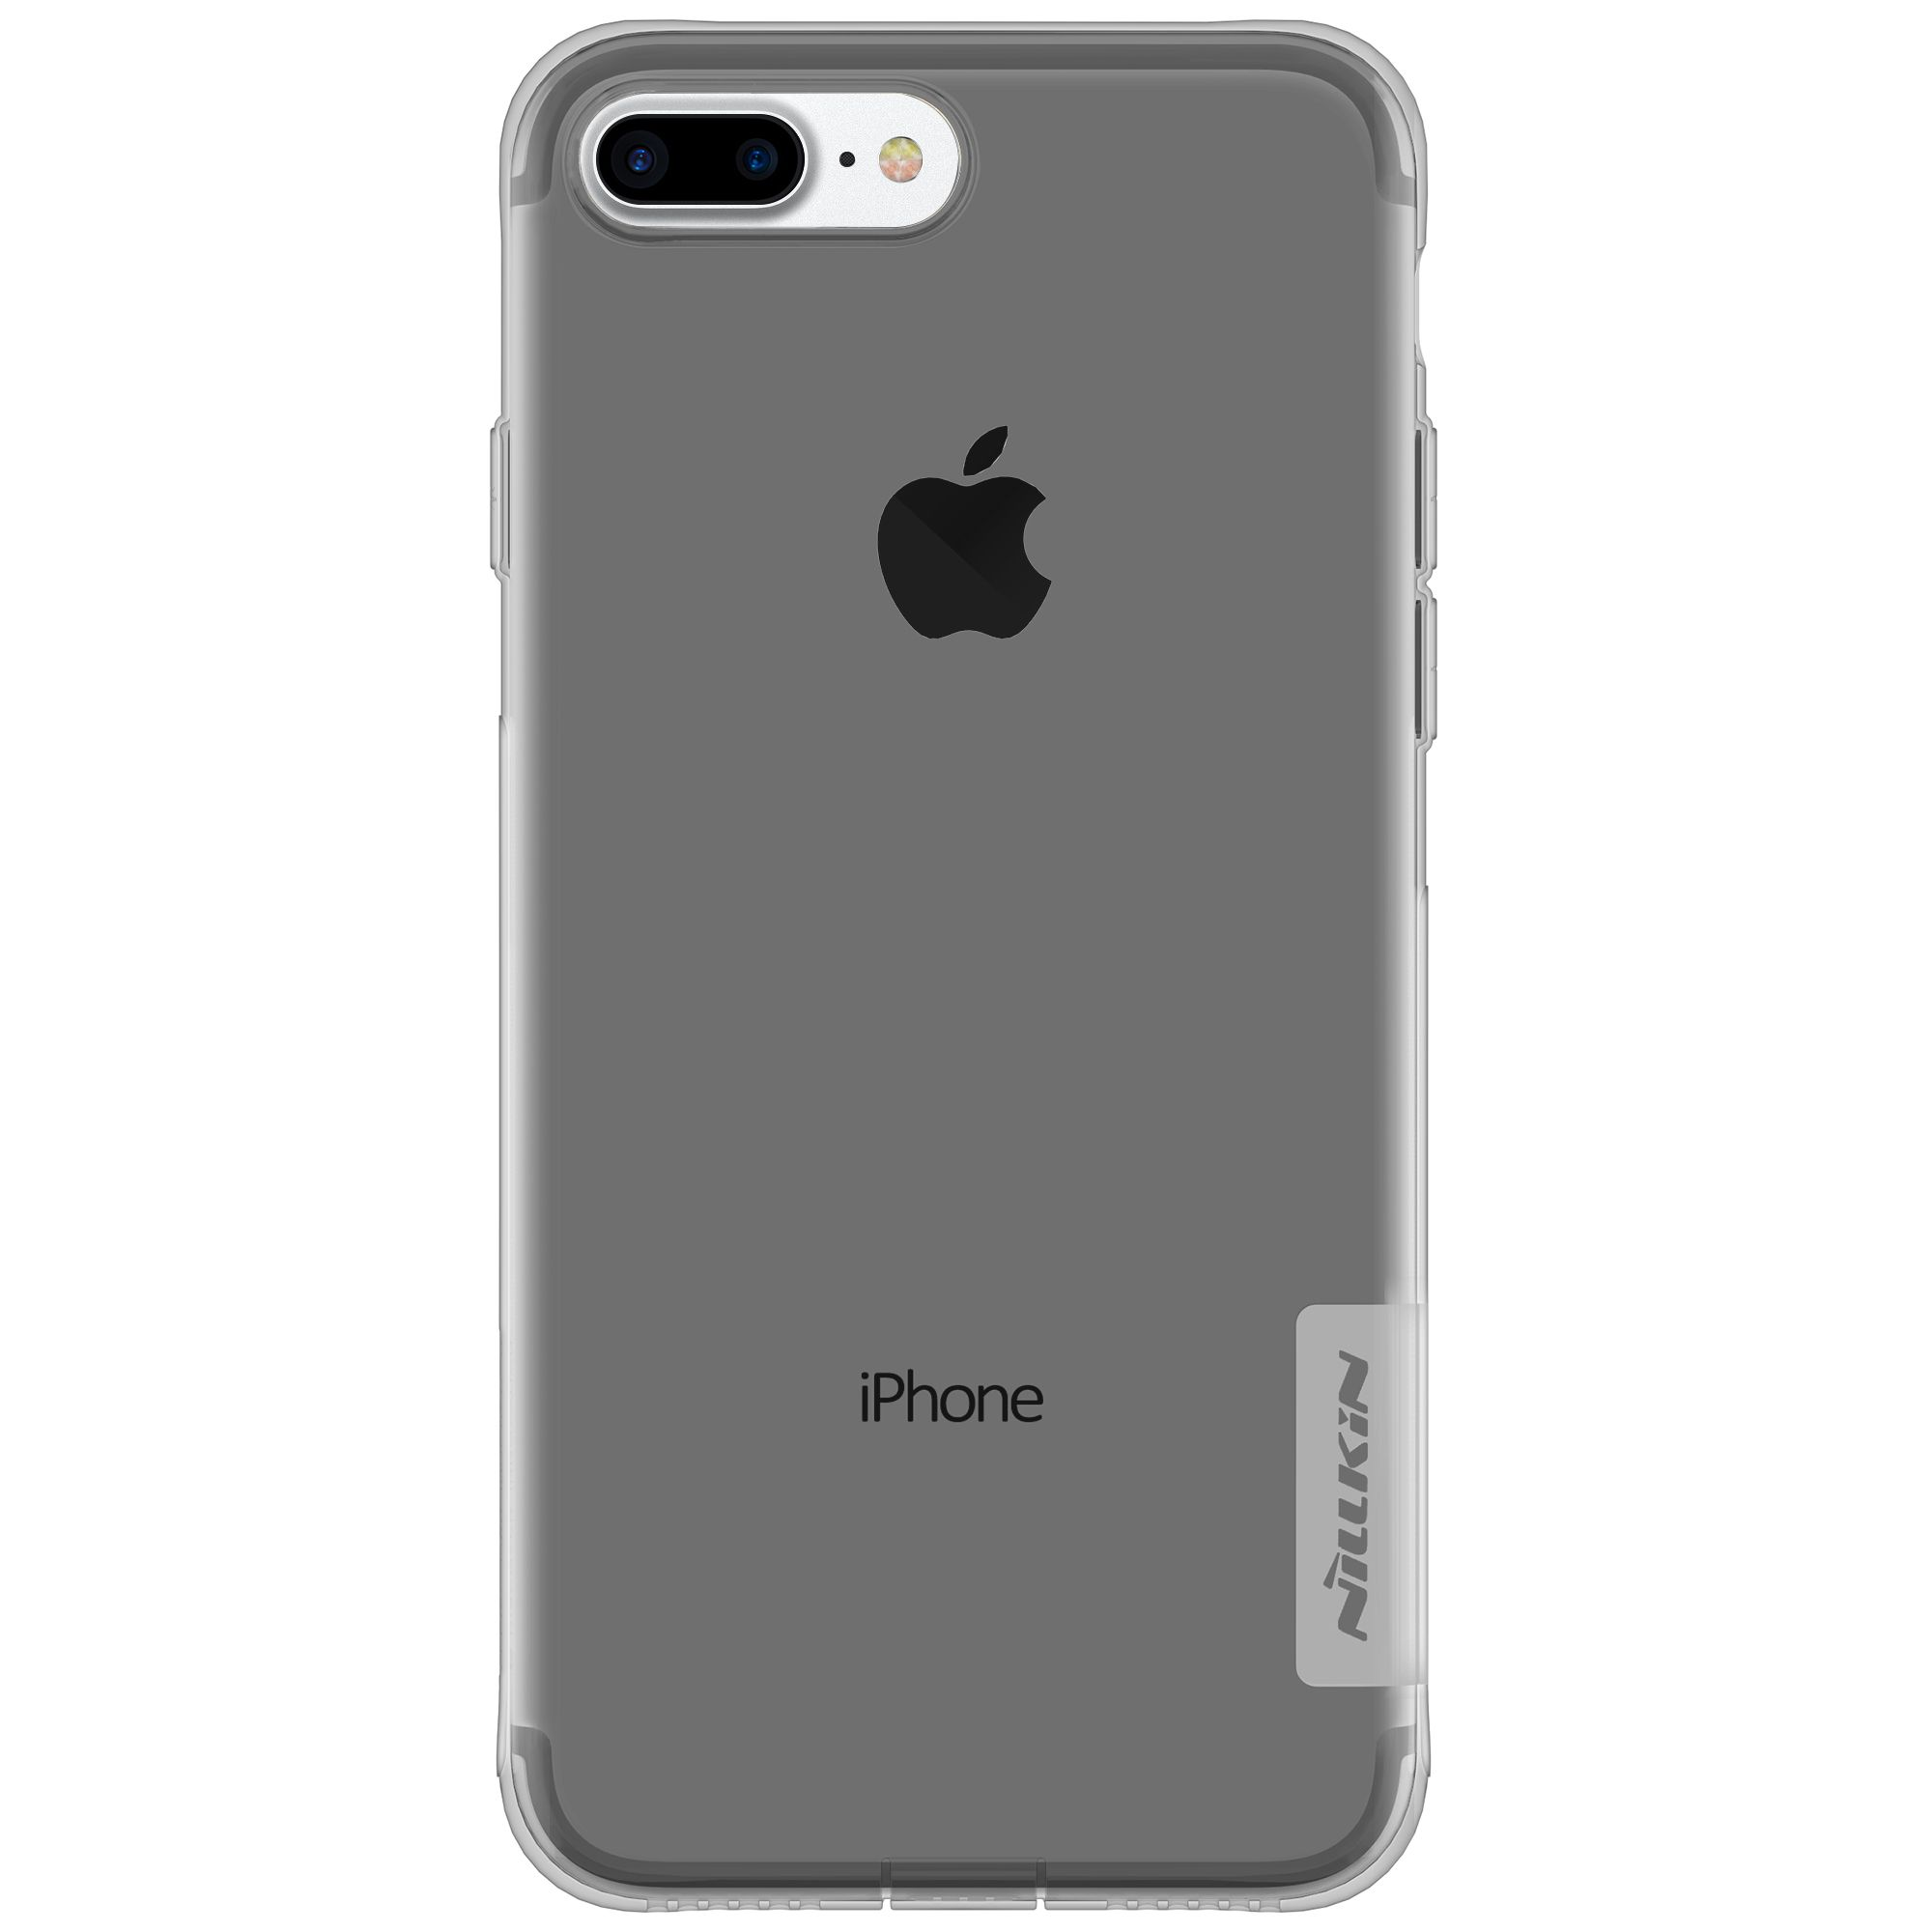 Capinha Case Iphone 7 Plus Nillkin Nature Tpu Original Fumê